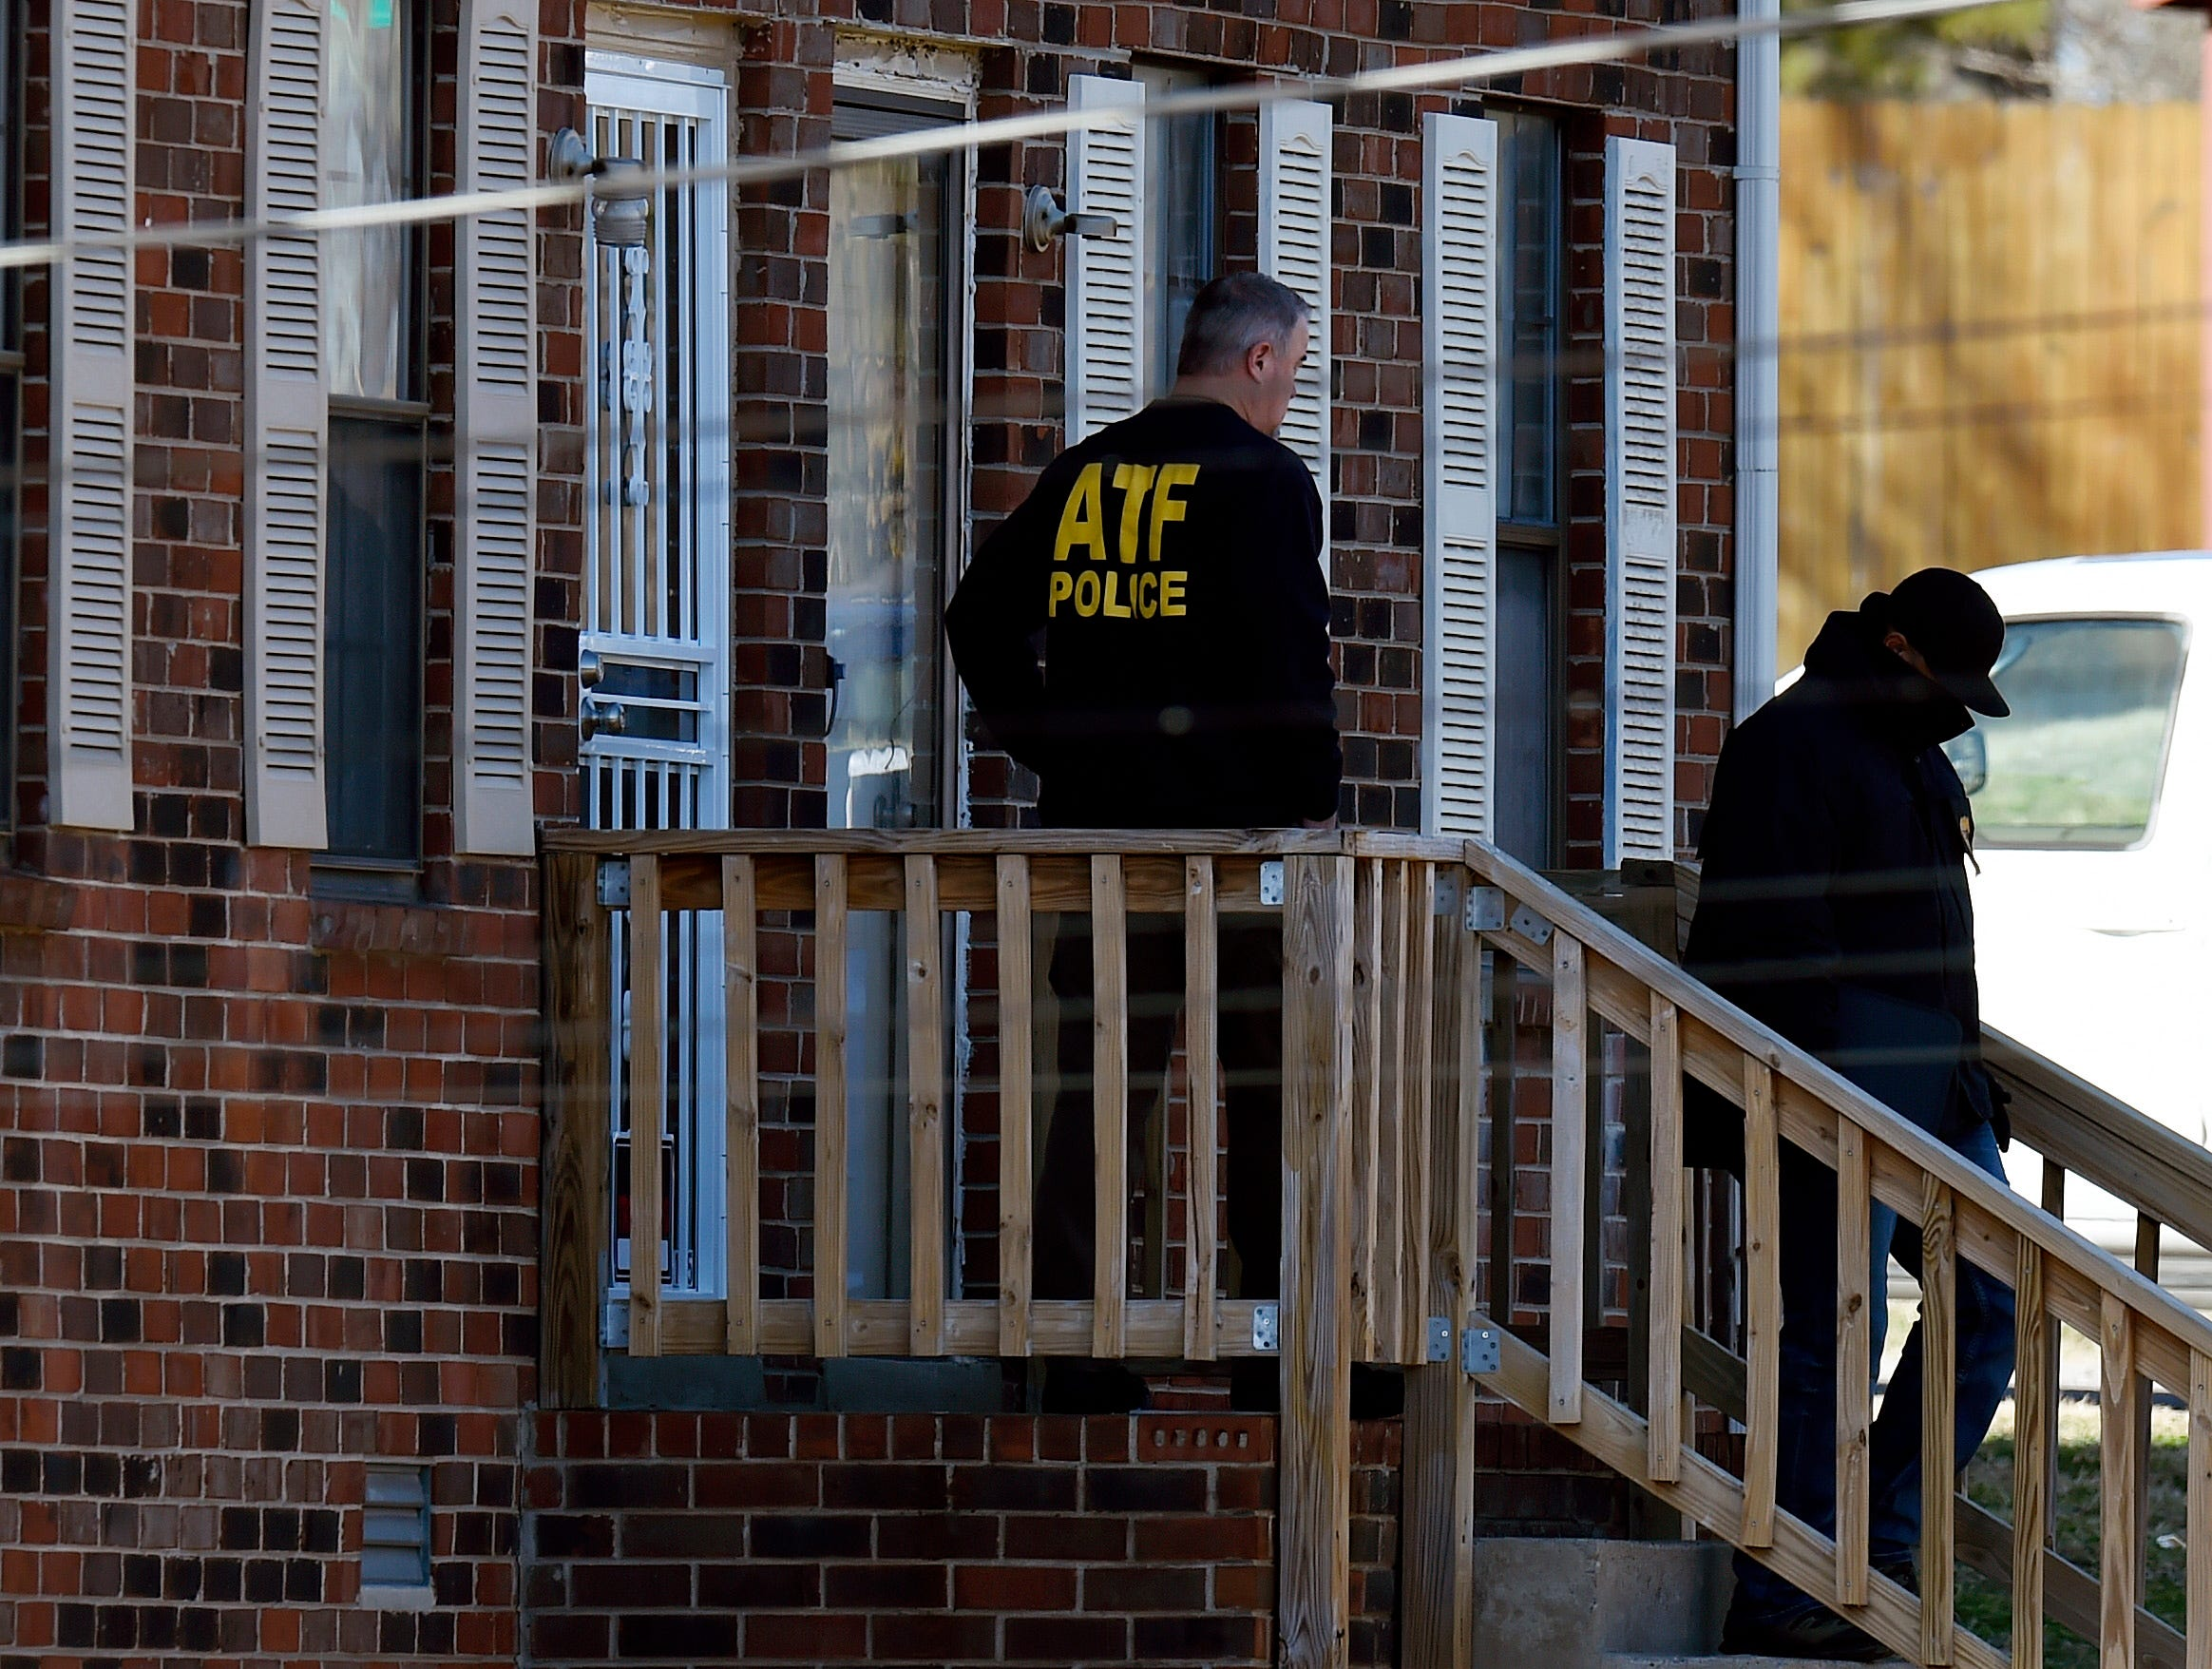 ATF, Metro Nashville Police, and the FBI search a home on Bakertown Drive in connection with the Christmas Day explosion on Saturday, December 26, 2020 in Antioch, Tenn.